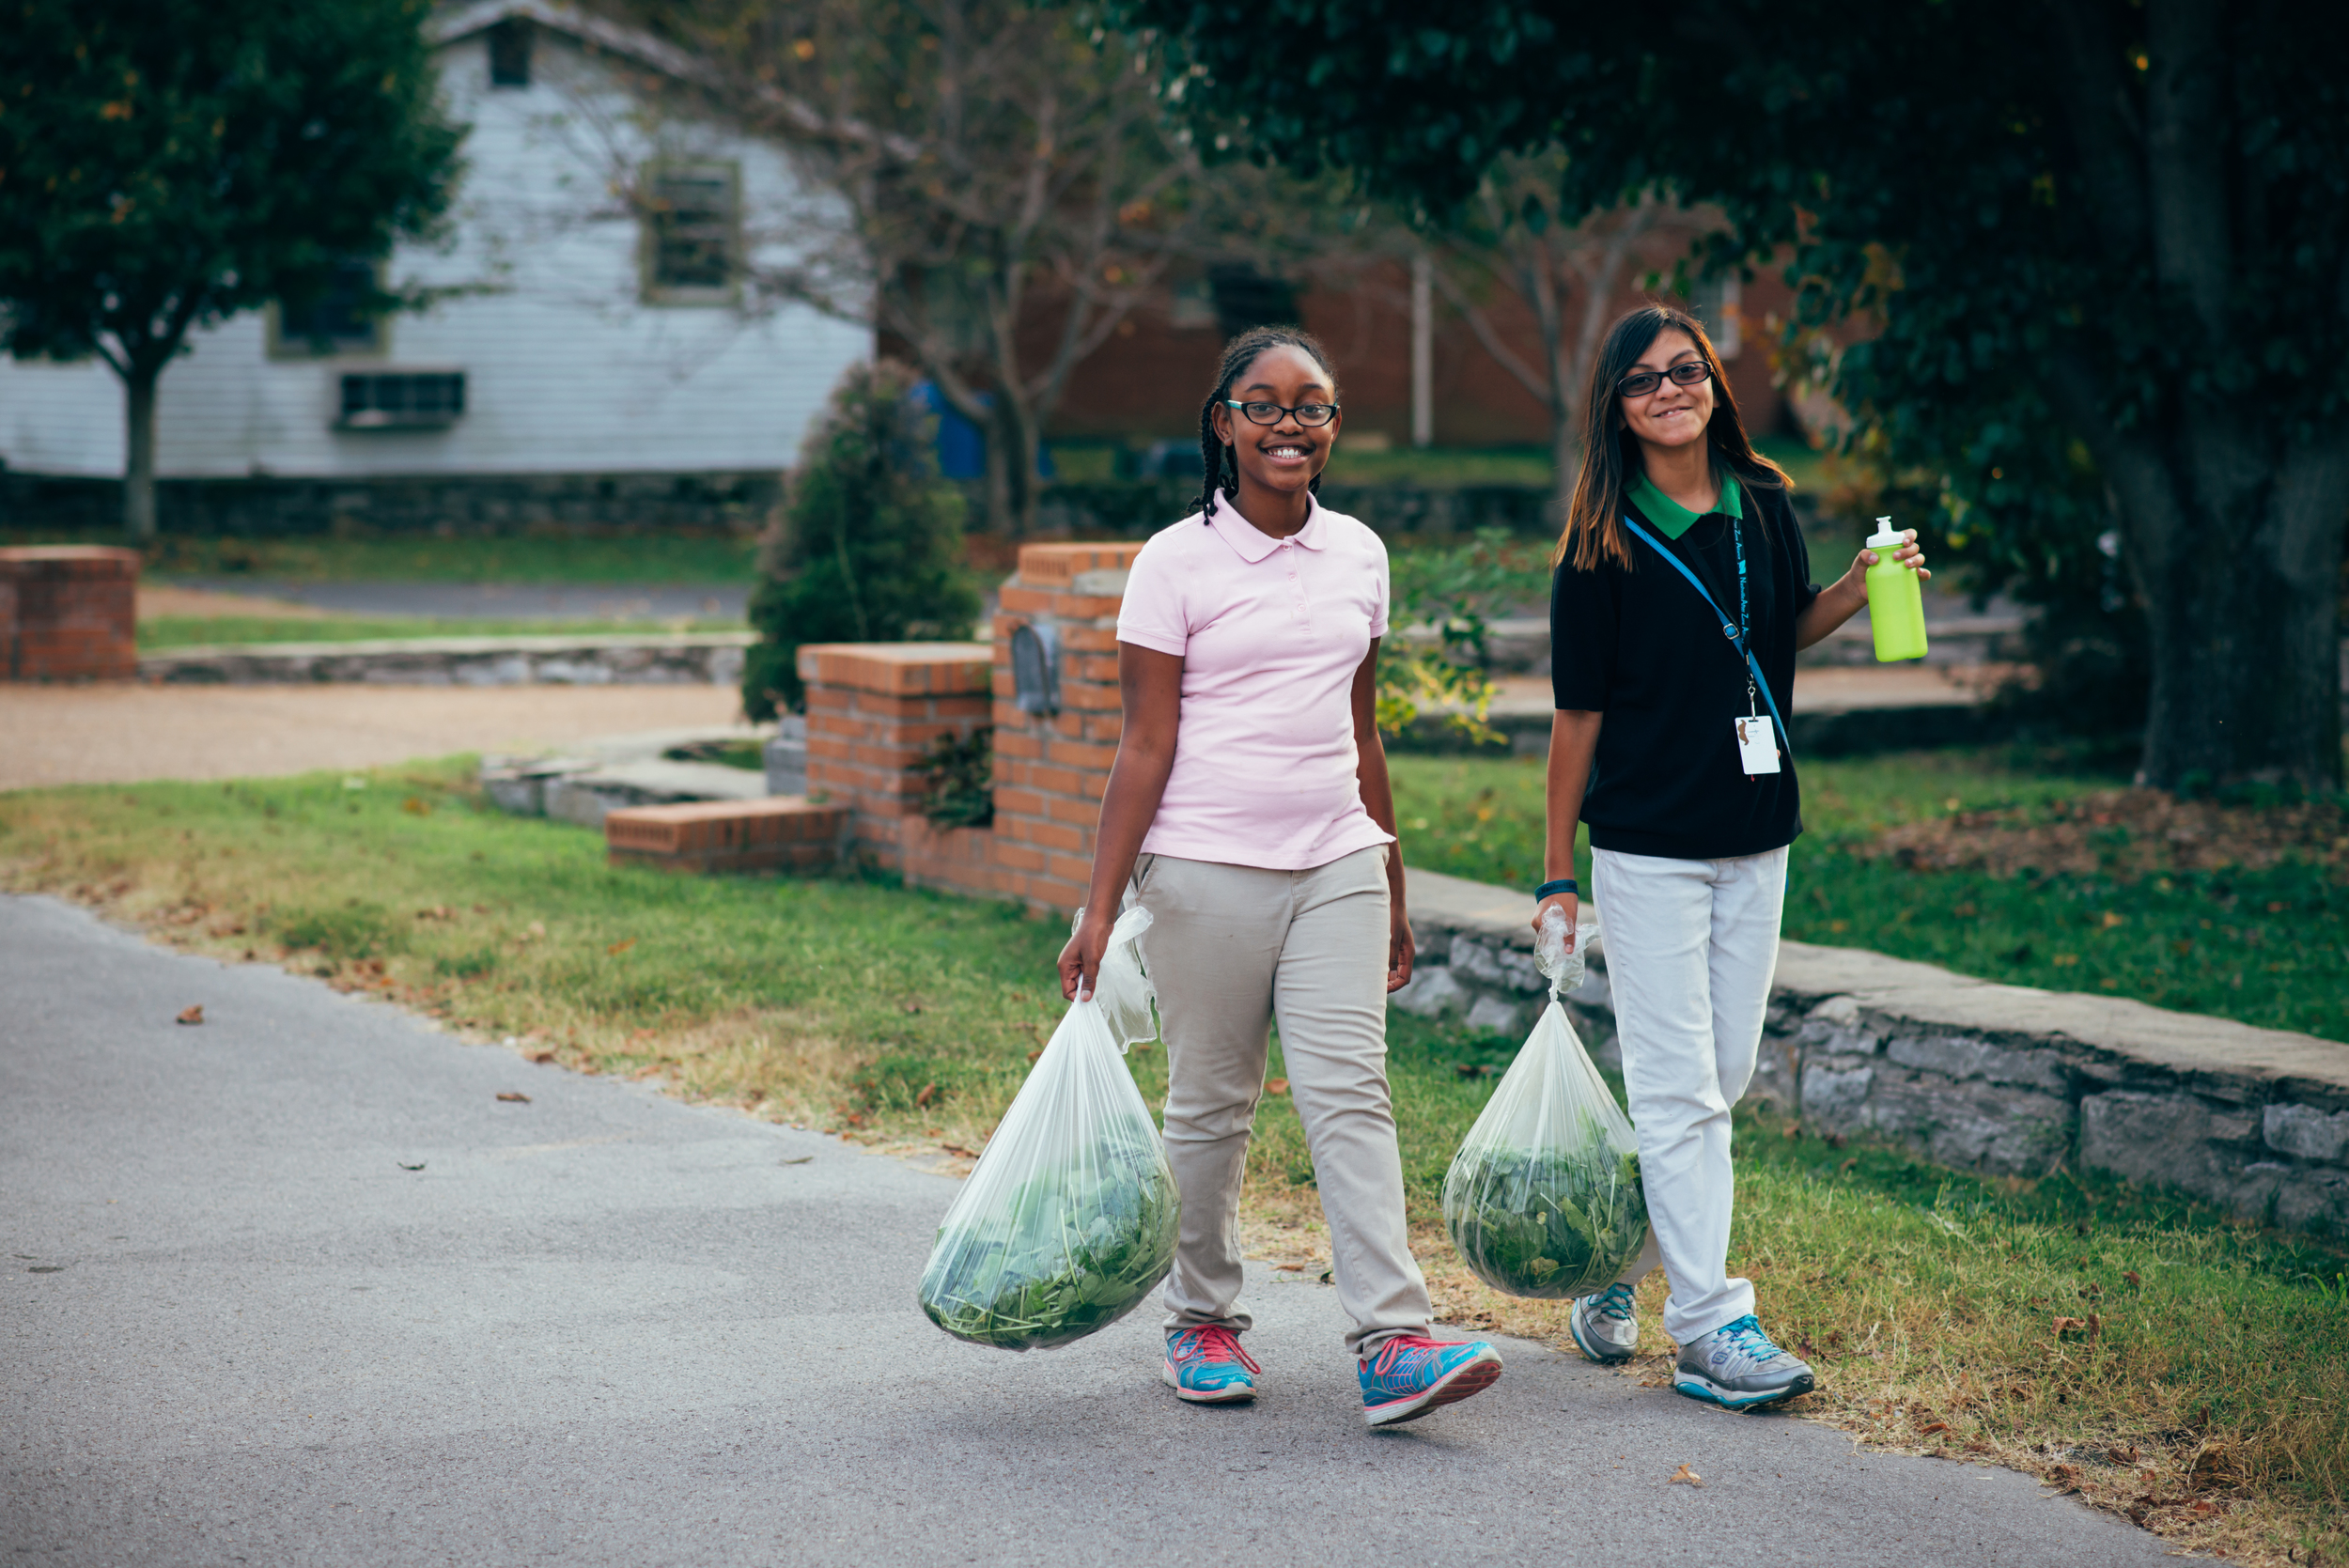 """C.A.S.E. students walk deliveries to neighbors in Hopewell. Geoff Hartnell reflects, """"Kids are typically really worn out by working in the garden. But when they get to deliver the produce to neighbors, they really love it."""""""